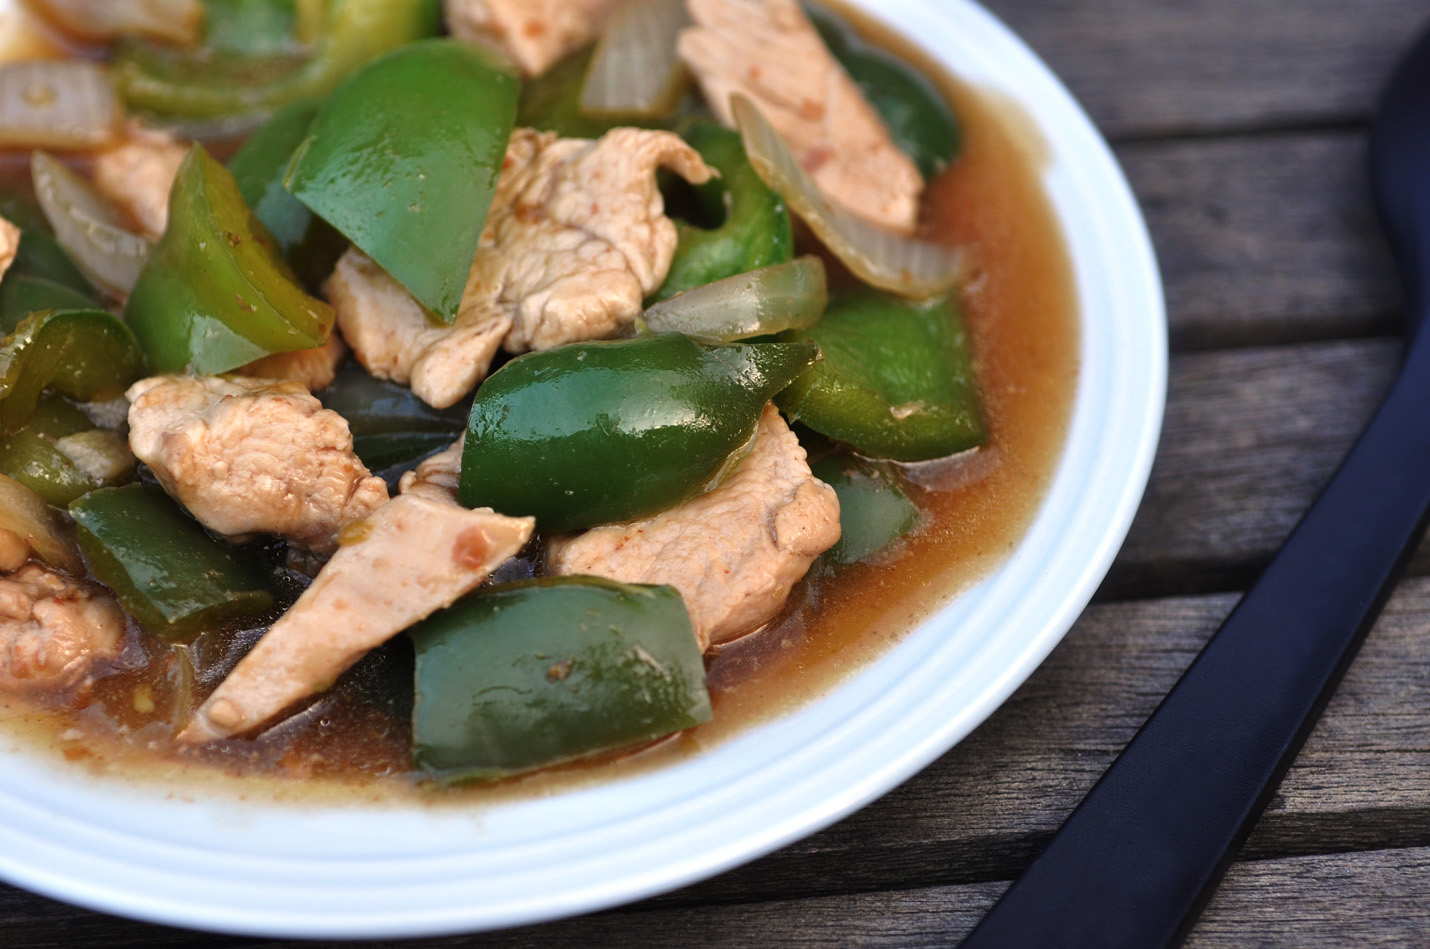 Anja's Food 4 Thought: Chicken Green Pepper Stir Fry